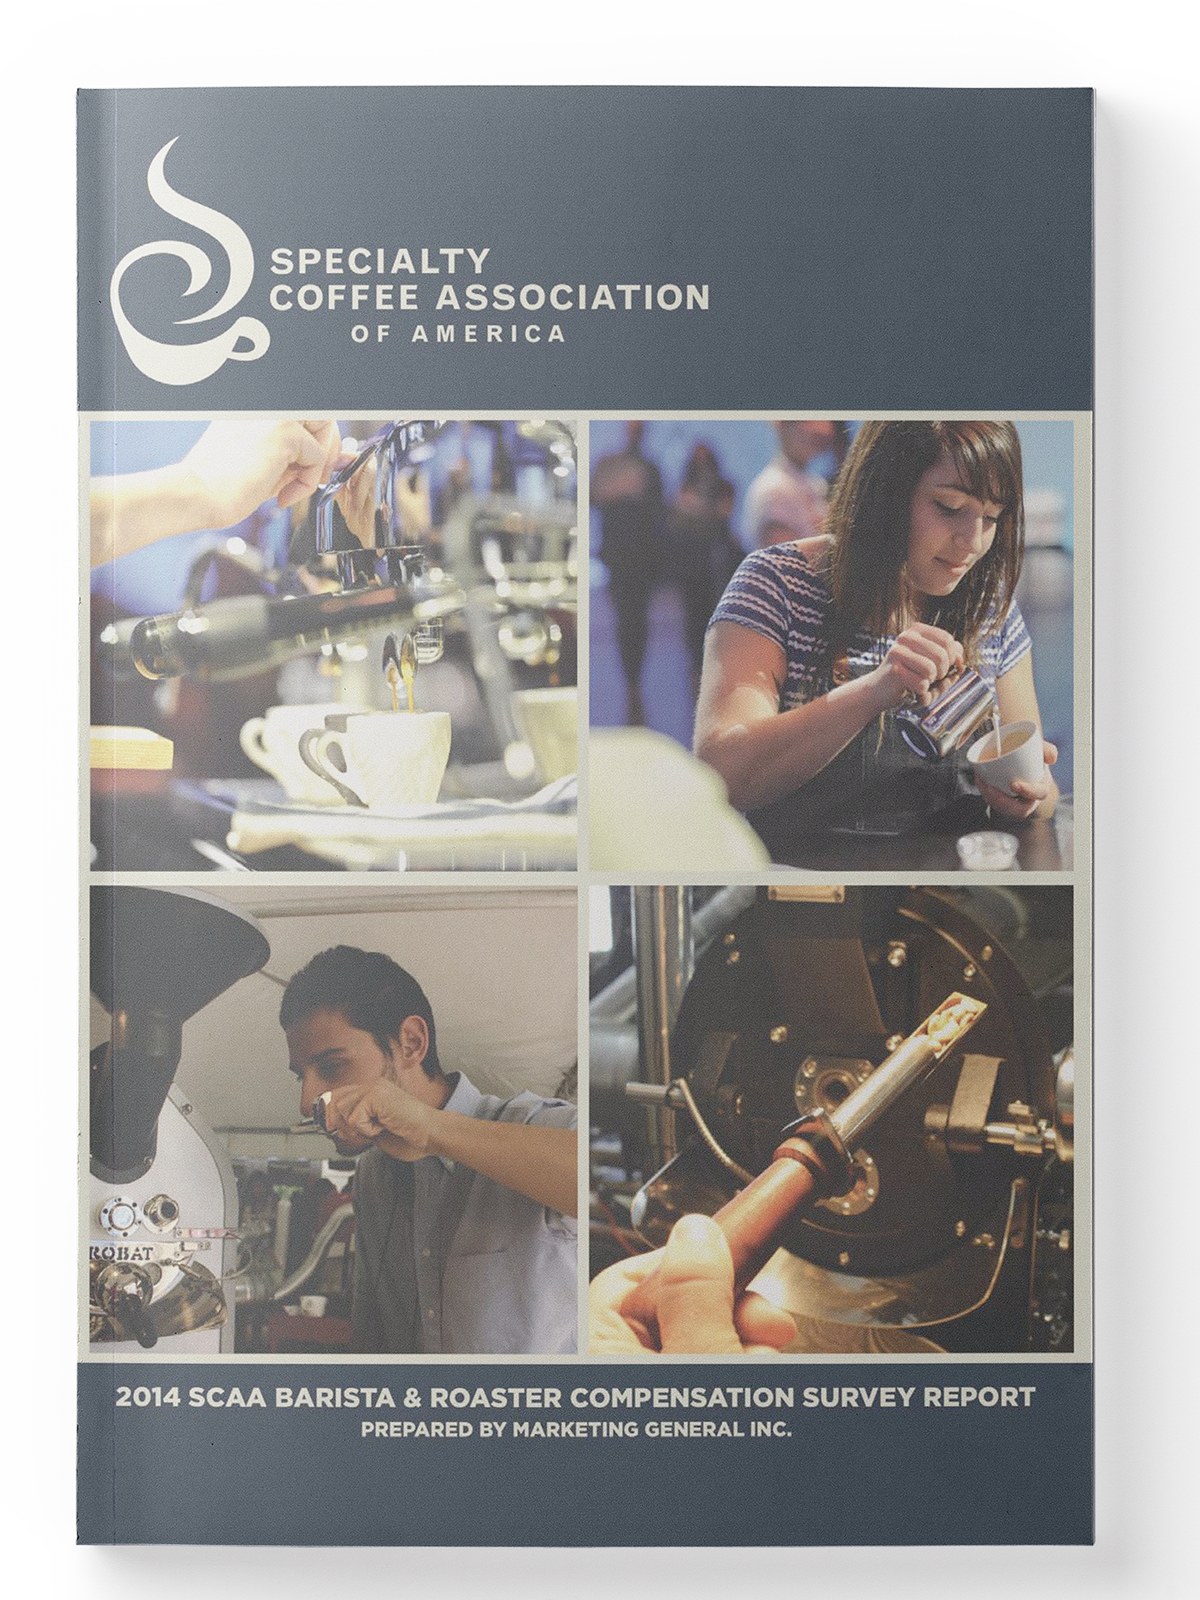 Roaster Financial Ratio Report   The 2015 SCAA Roaster Financial Ratio Report presents a detailed analysis based on the results of a survey that was sent out to roaster retailers and wholesalers in early 2015. This report is designed to be a benchmarking tool to assess roasters' financial performance (based on 2014 results) relative to other businesses. Details of the report reflect key operating data including financial ratios, sales mix data, and company profile information based on the results of the survey.   Buy Now